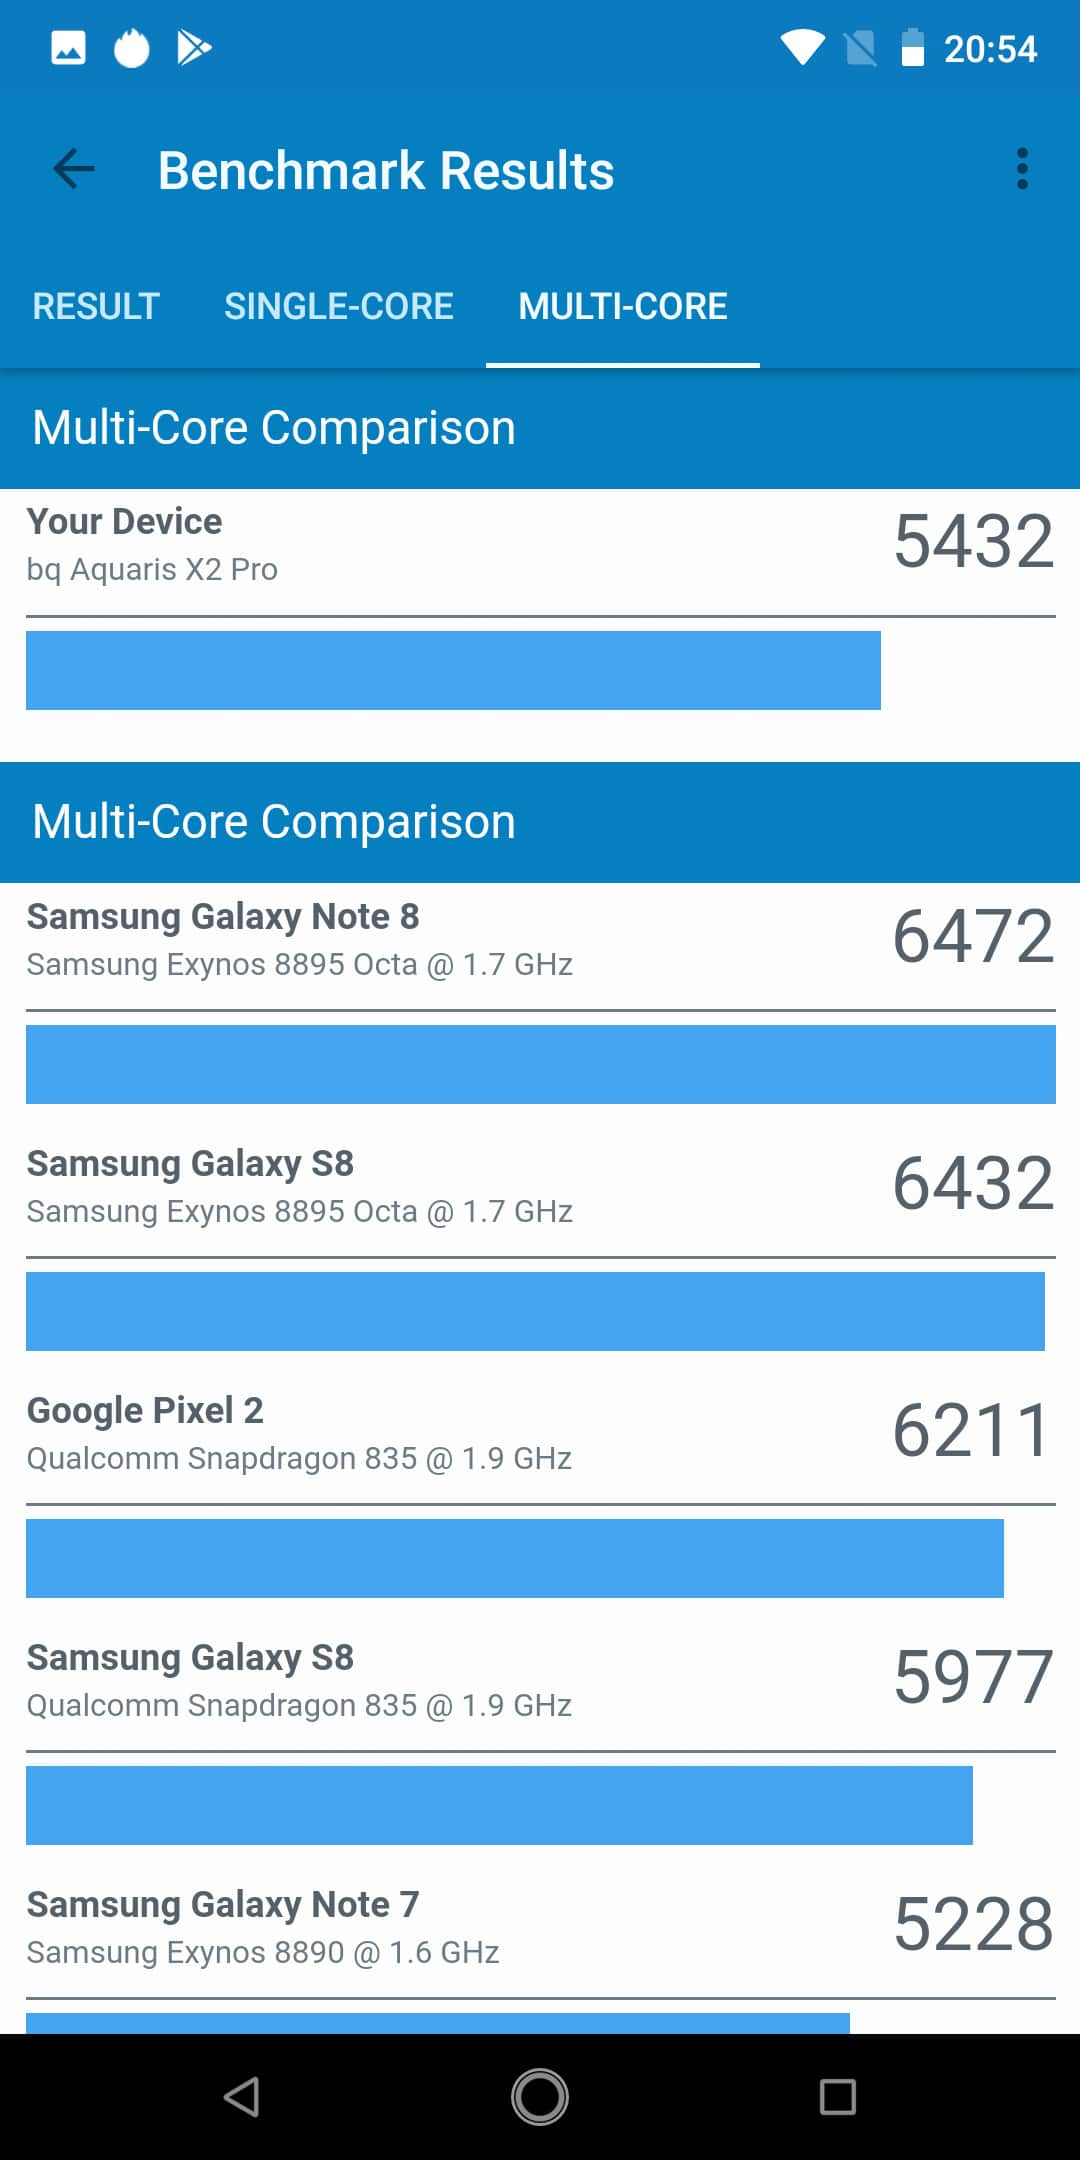 BQ Aquaris X2 Pro Benchmarktests 4